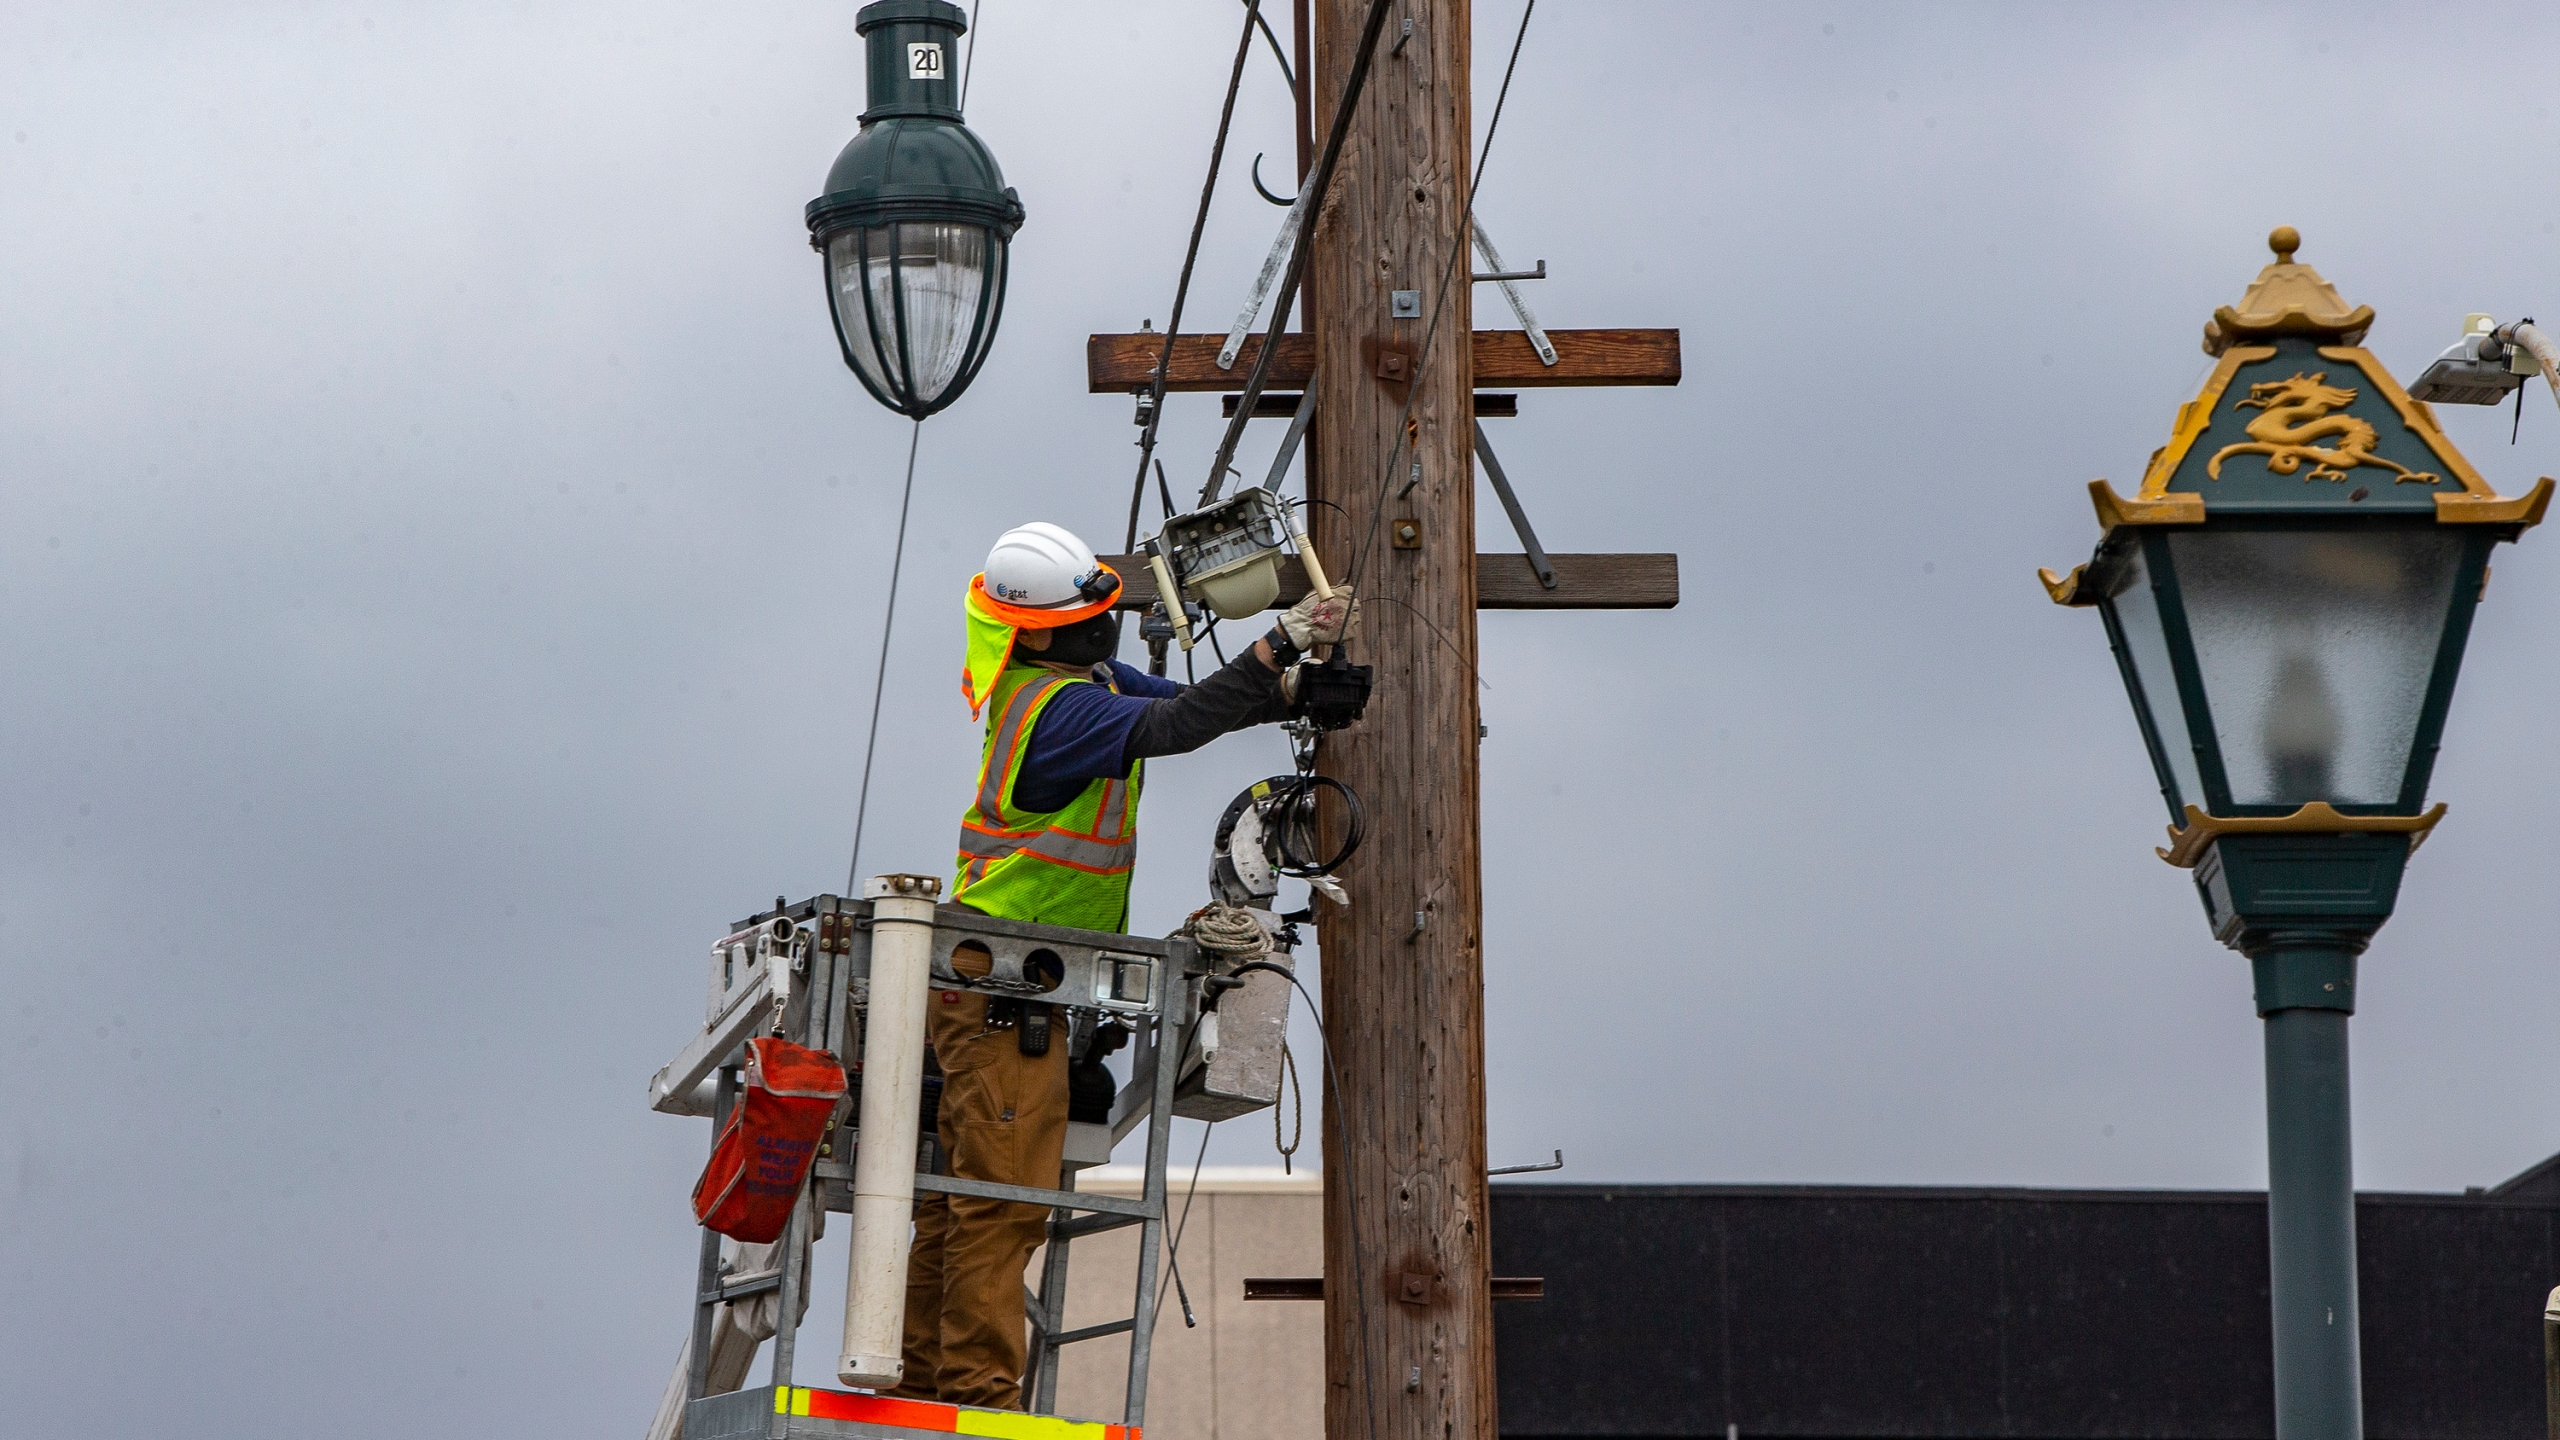 AT&T workers deploy fiber optic lines for a cellphone tower station in the Chinatown neighborhood of Los Angeles on June 5, 2020. (Damian Dovarganes / Associated Press)